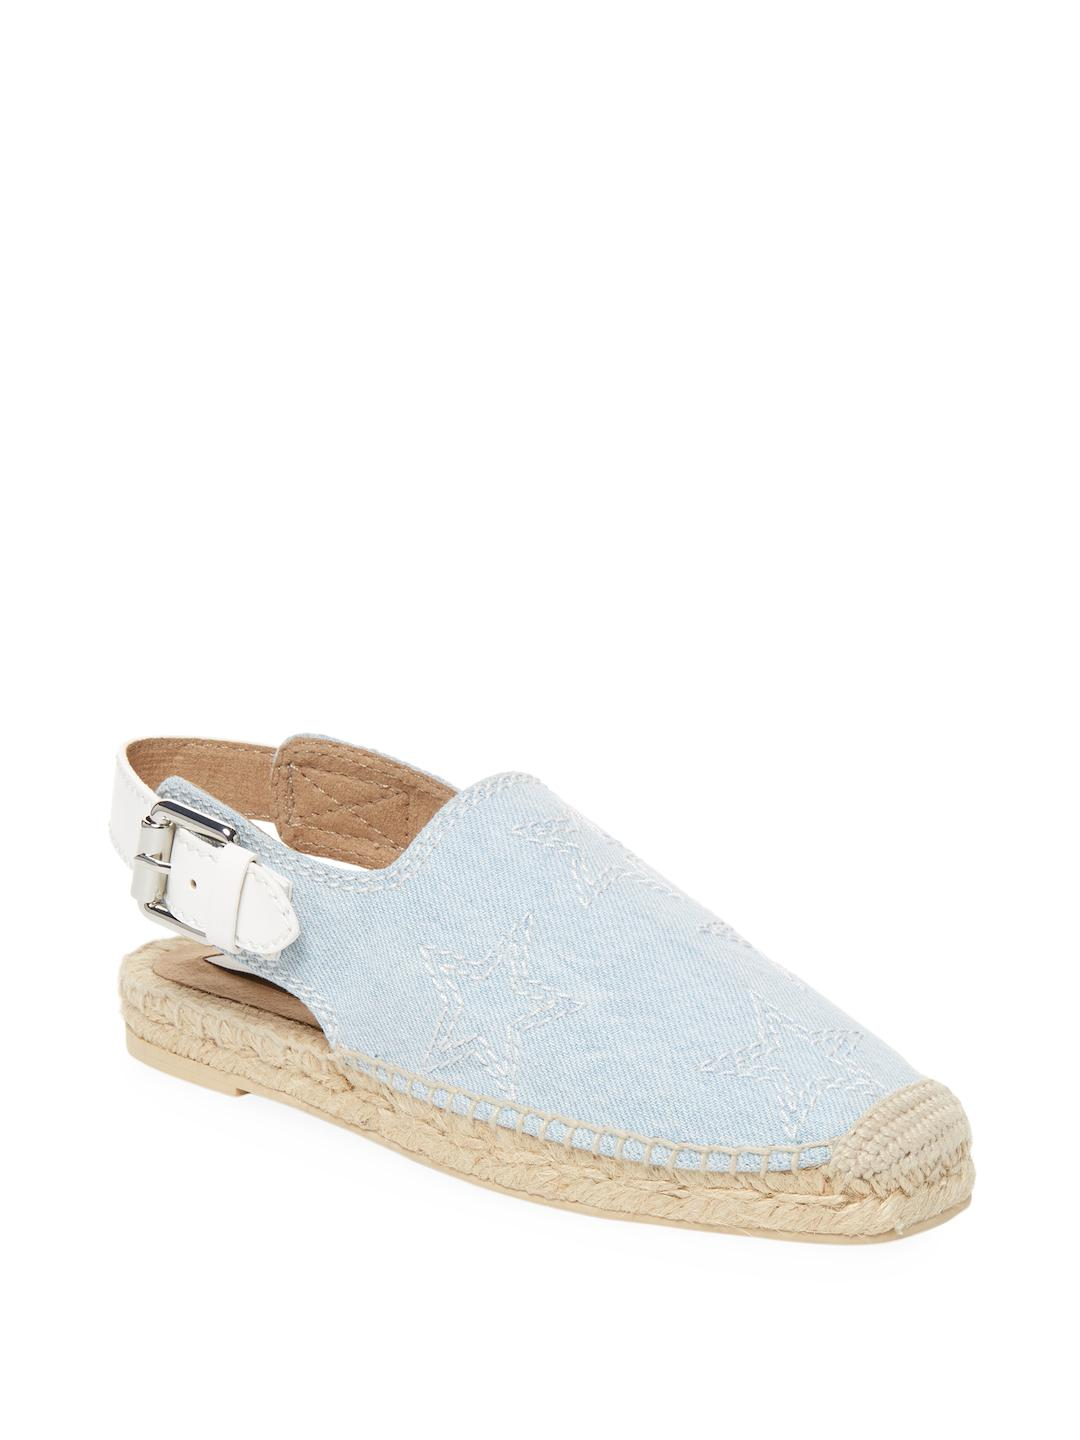 sale outlet locations Stella McCartney Woven Round-Toe Espadrilles latest cA0lYWII